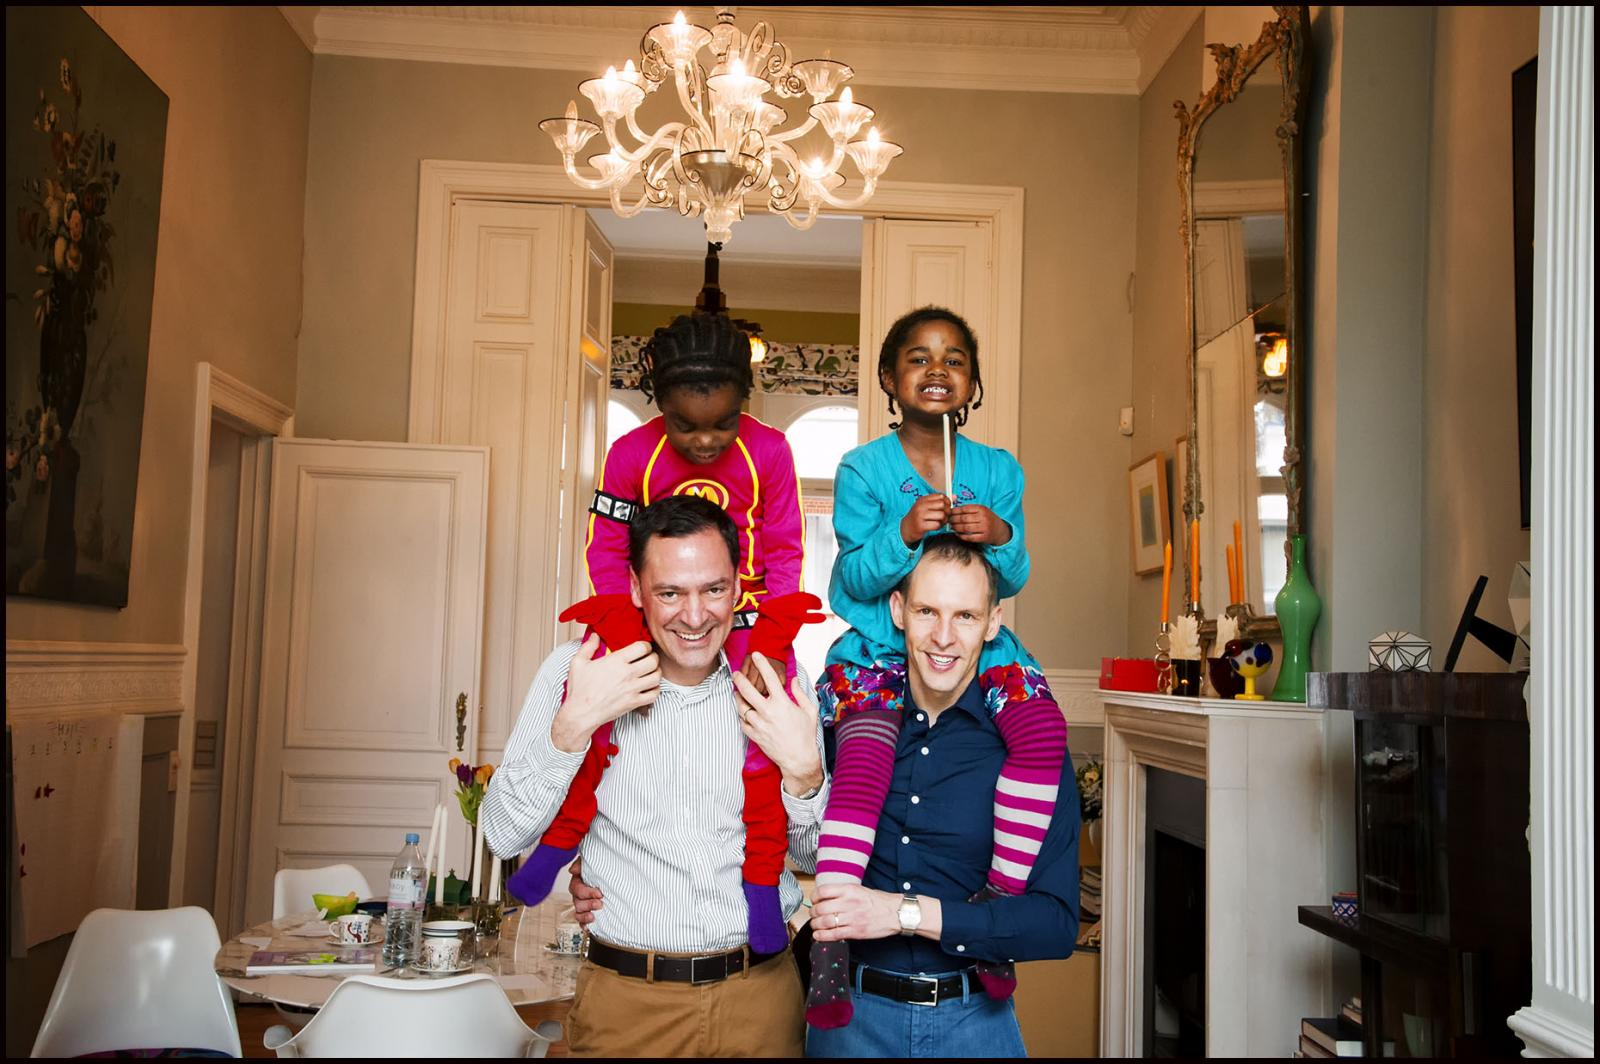 Photography image - Loading QUEERING_EULGBTFAMILIES00C.jpg